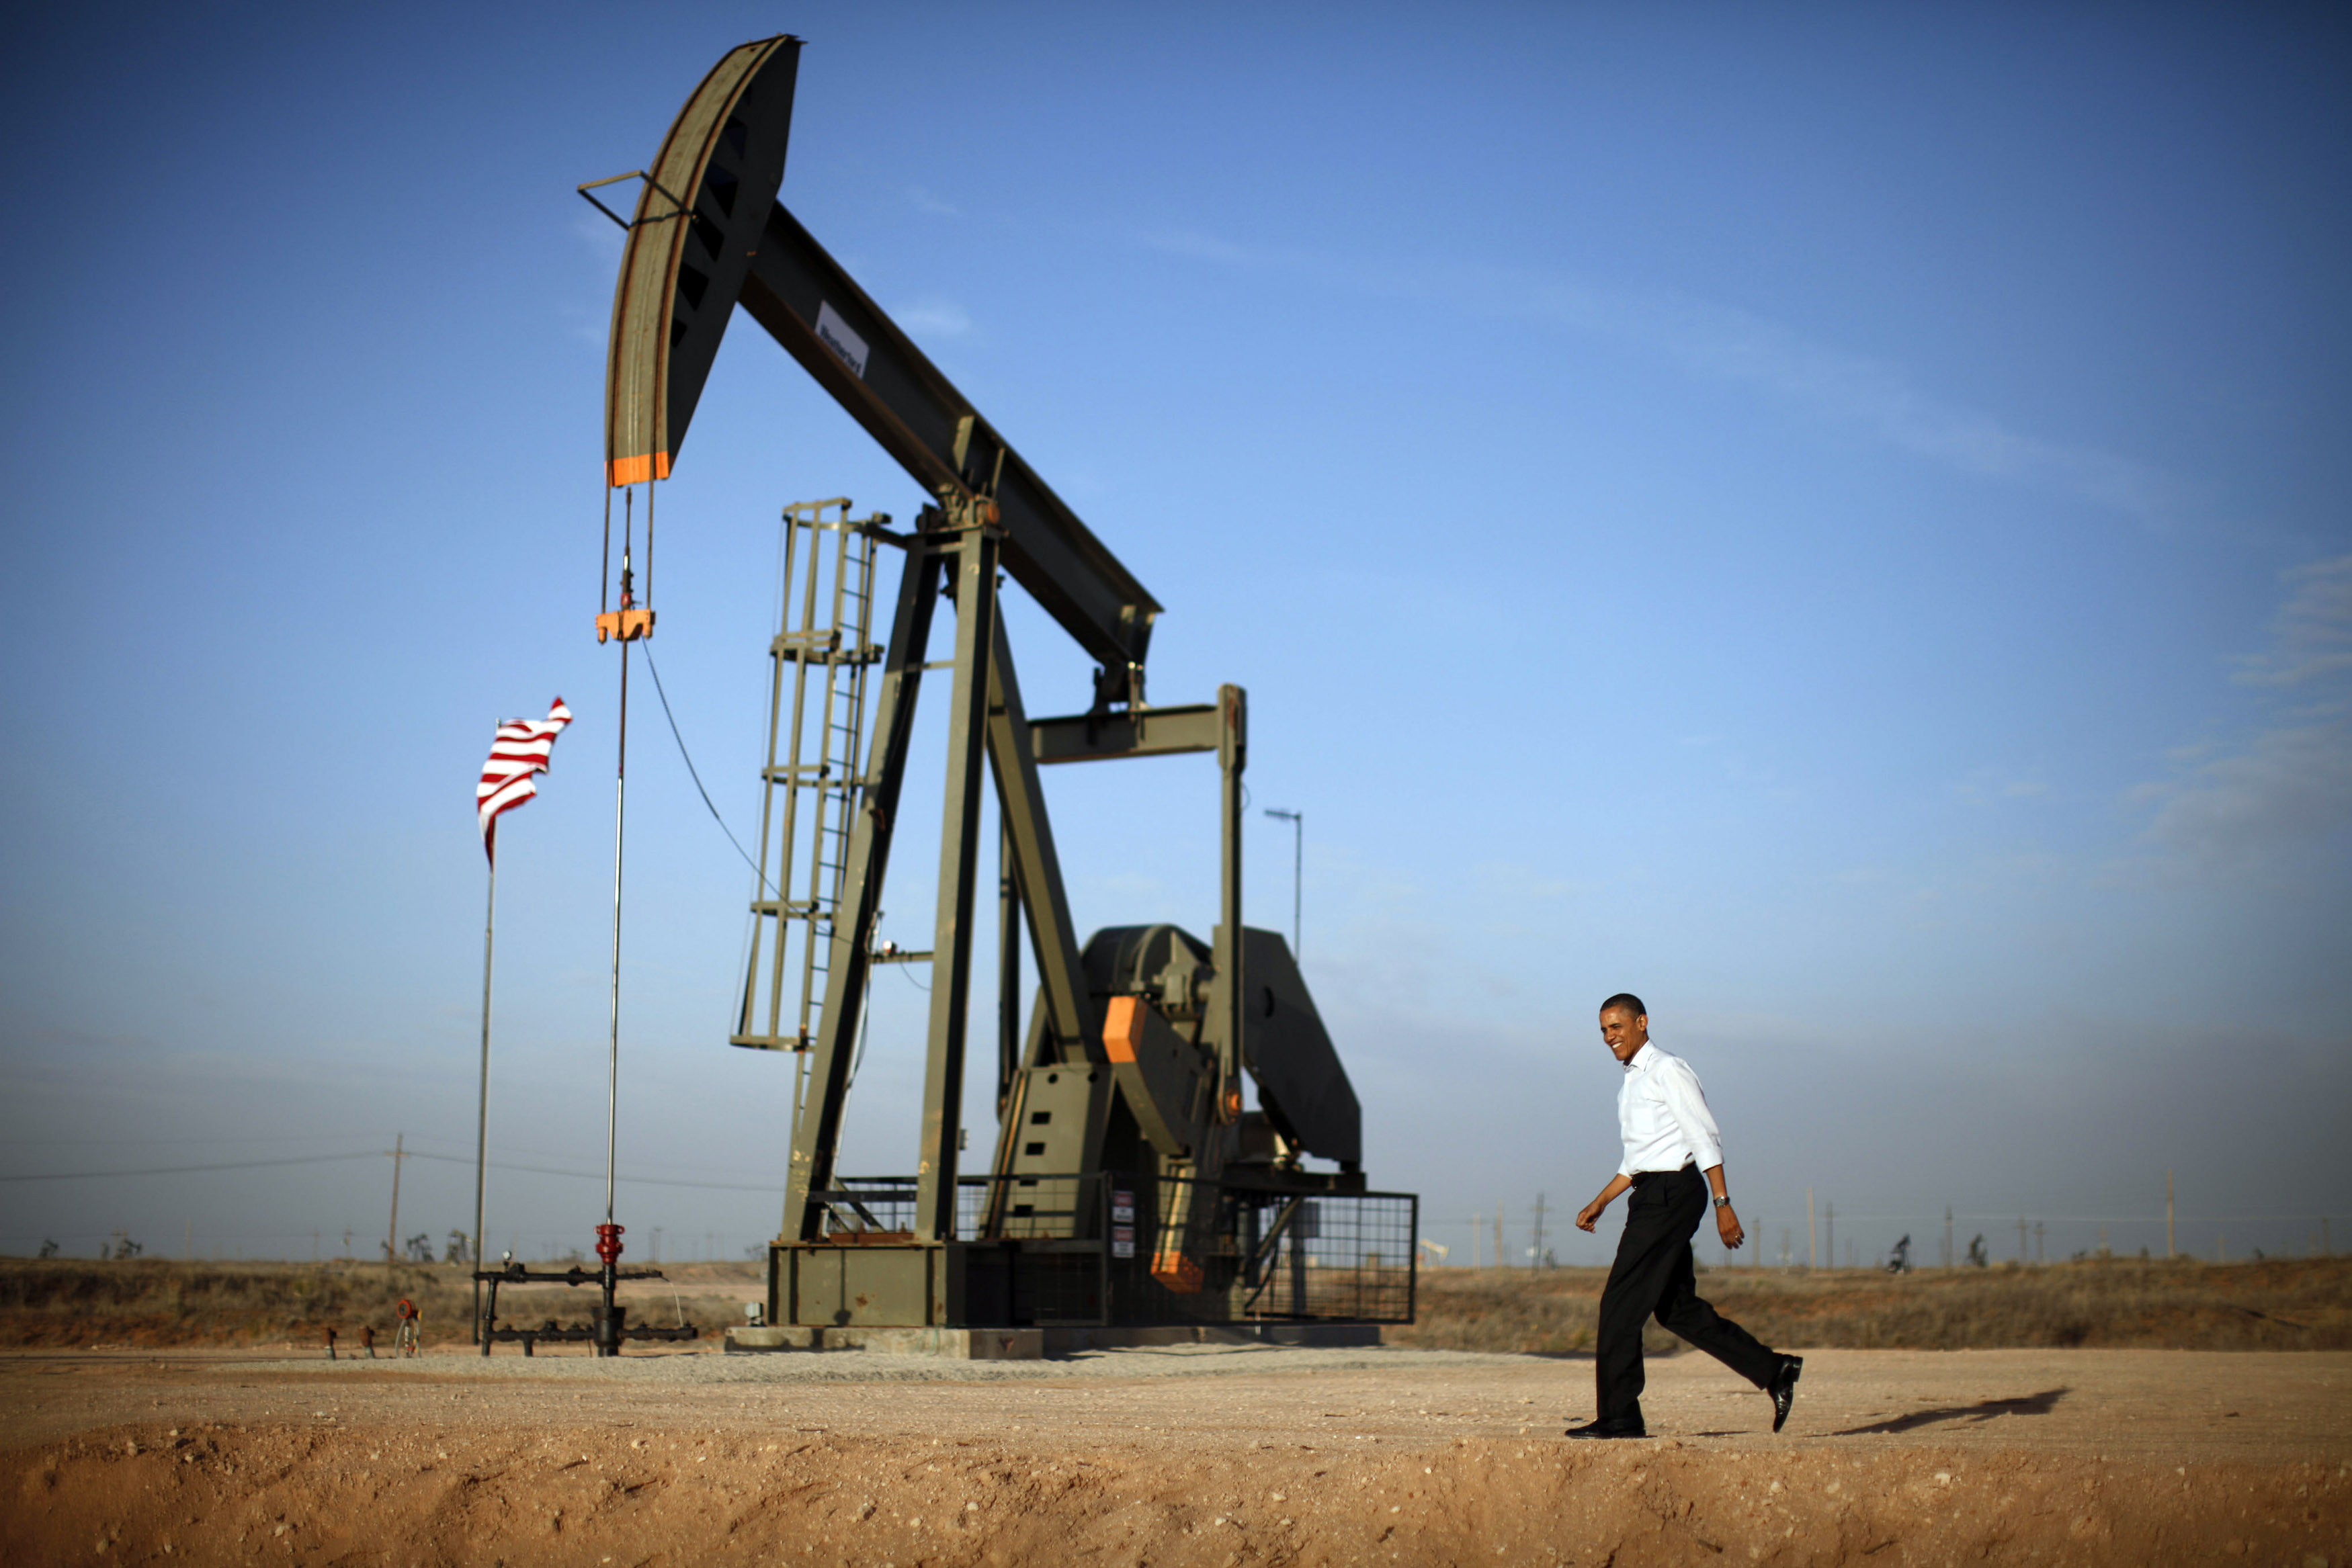 U.S. President Barack Obama walks past a pumpjack on his way to deliver remarks on energy independence at Maljamar Cooperative Association Unit in New Mexico.